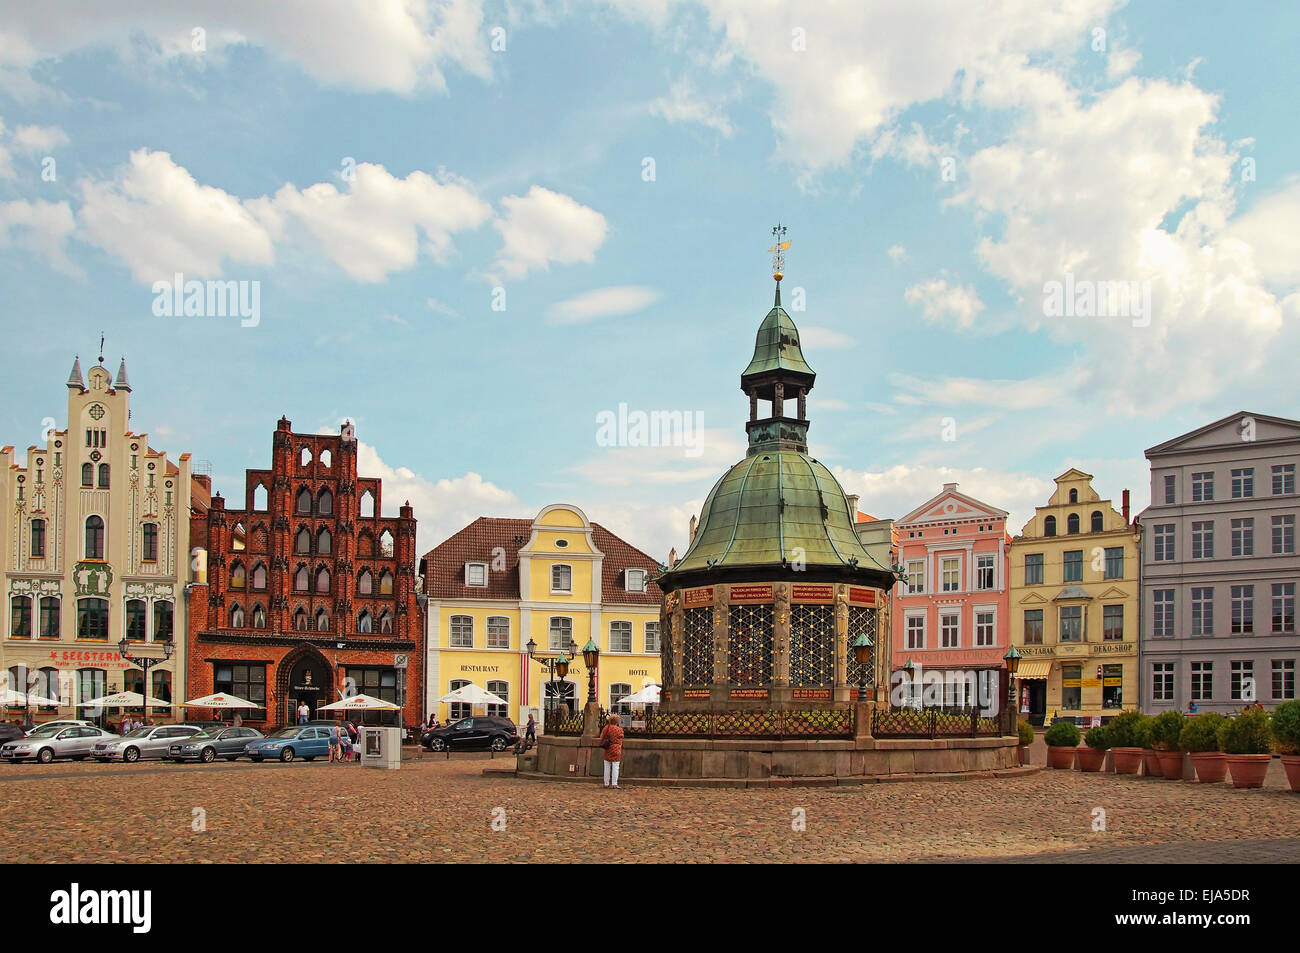 Market Place Hanseatic City of Wismar Germany - Stock Image